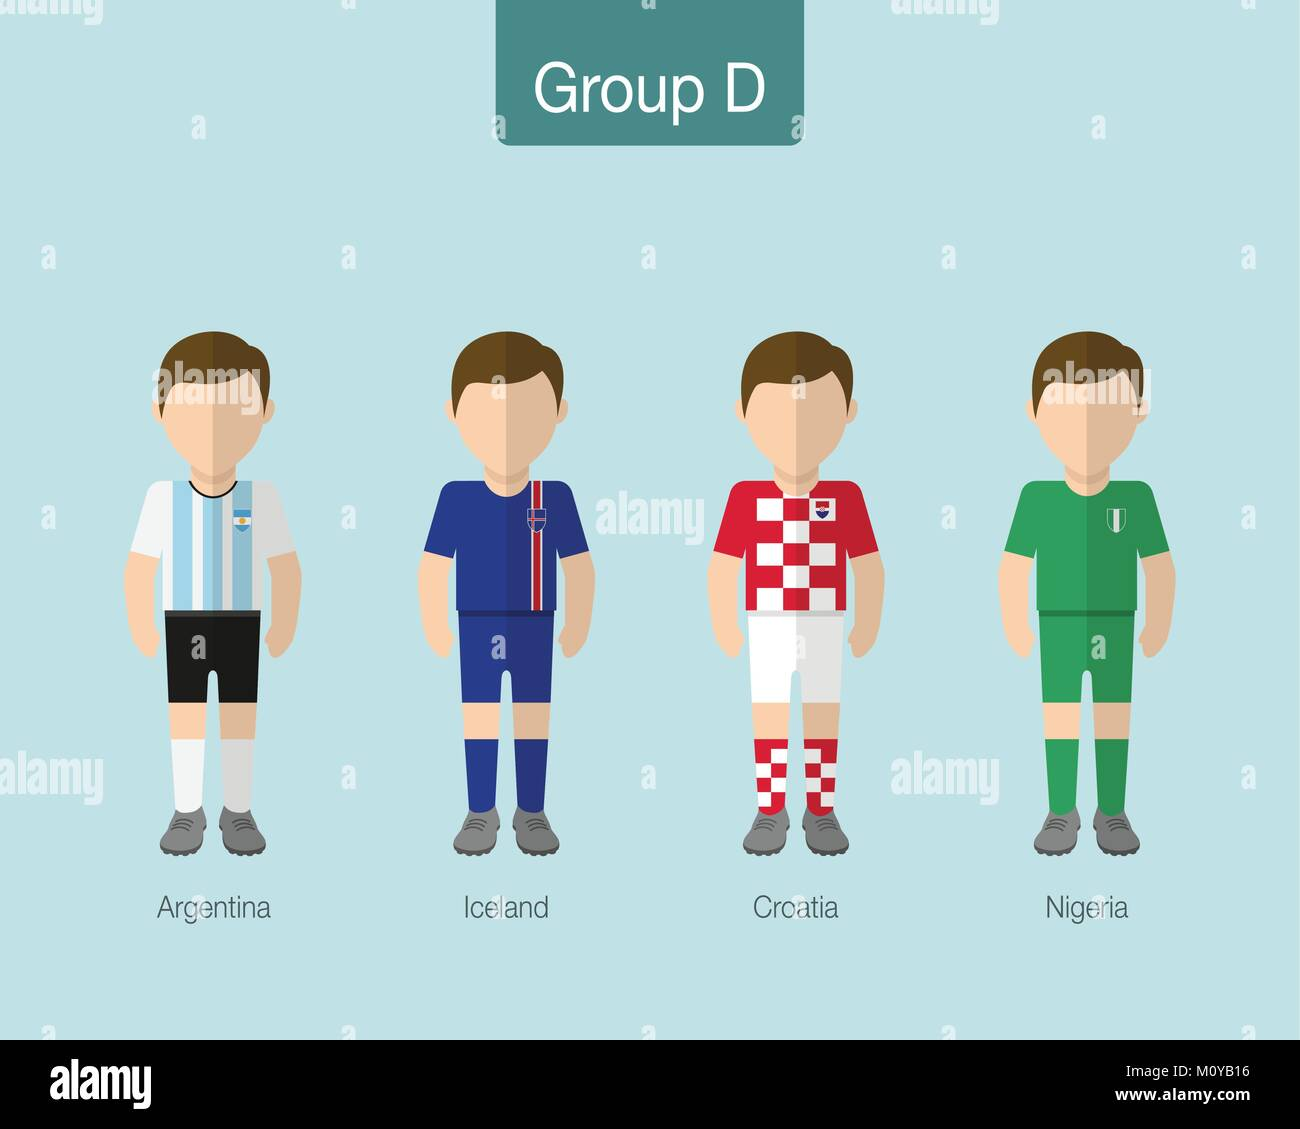 2018 Soccer or football team uniform. Group D with ARGENTINA, ICELAND, CROATIA, NIGERIA. Flat design. - Stock Vector